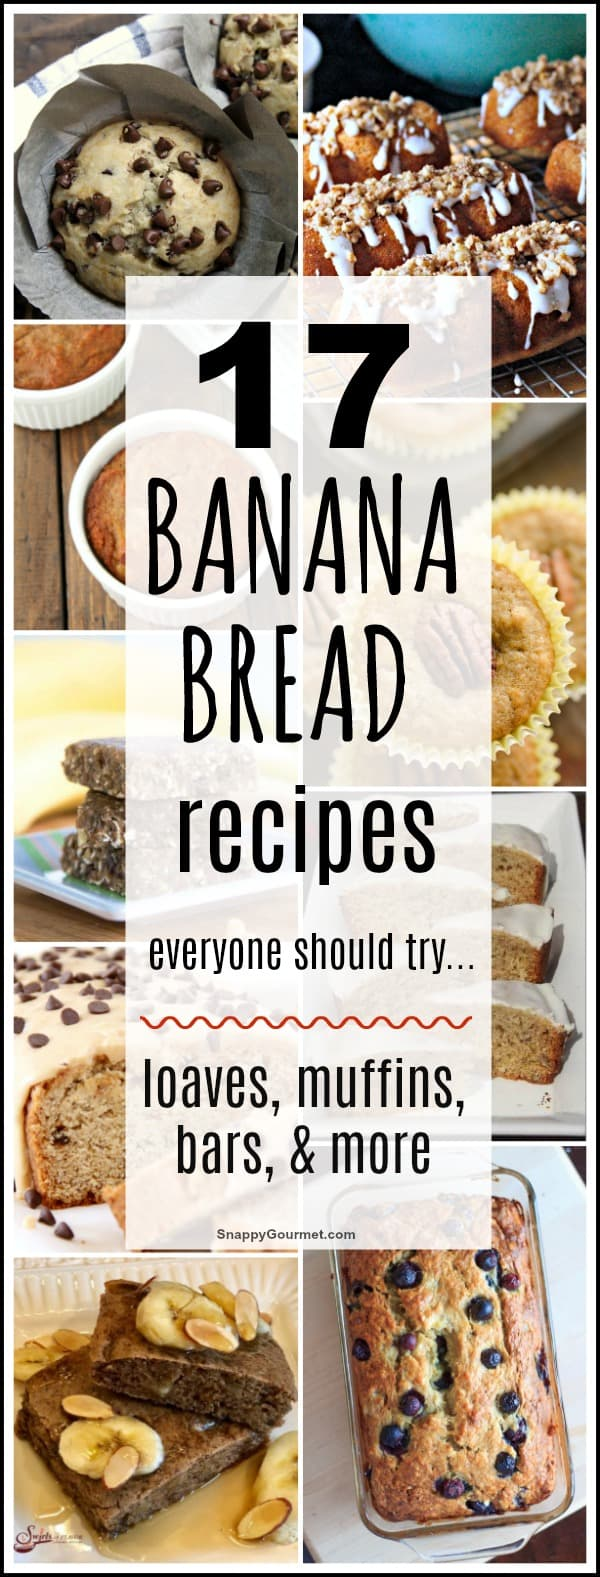 Banana Bread recipes including muffins, loaves, and bars